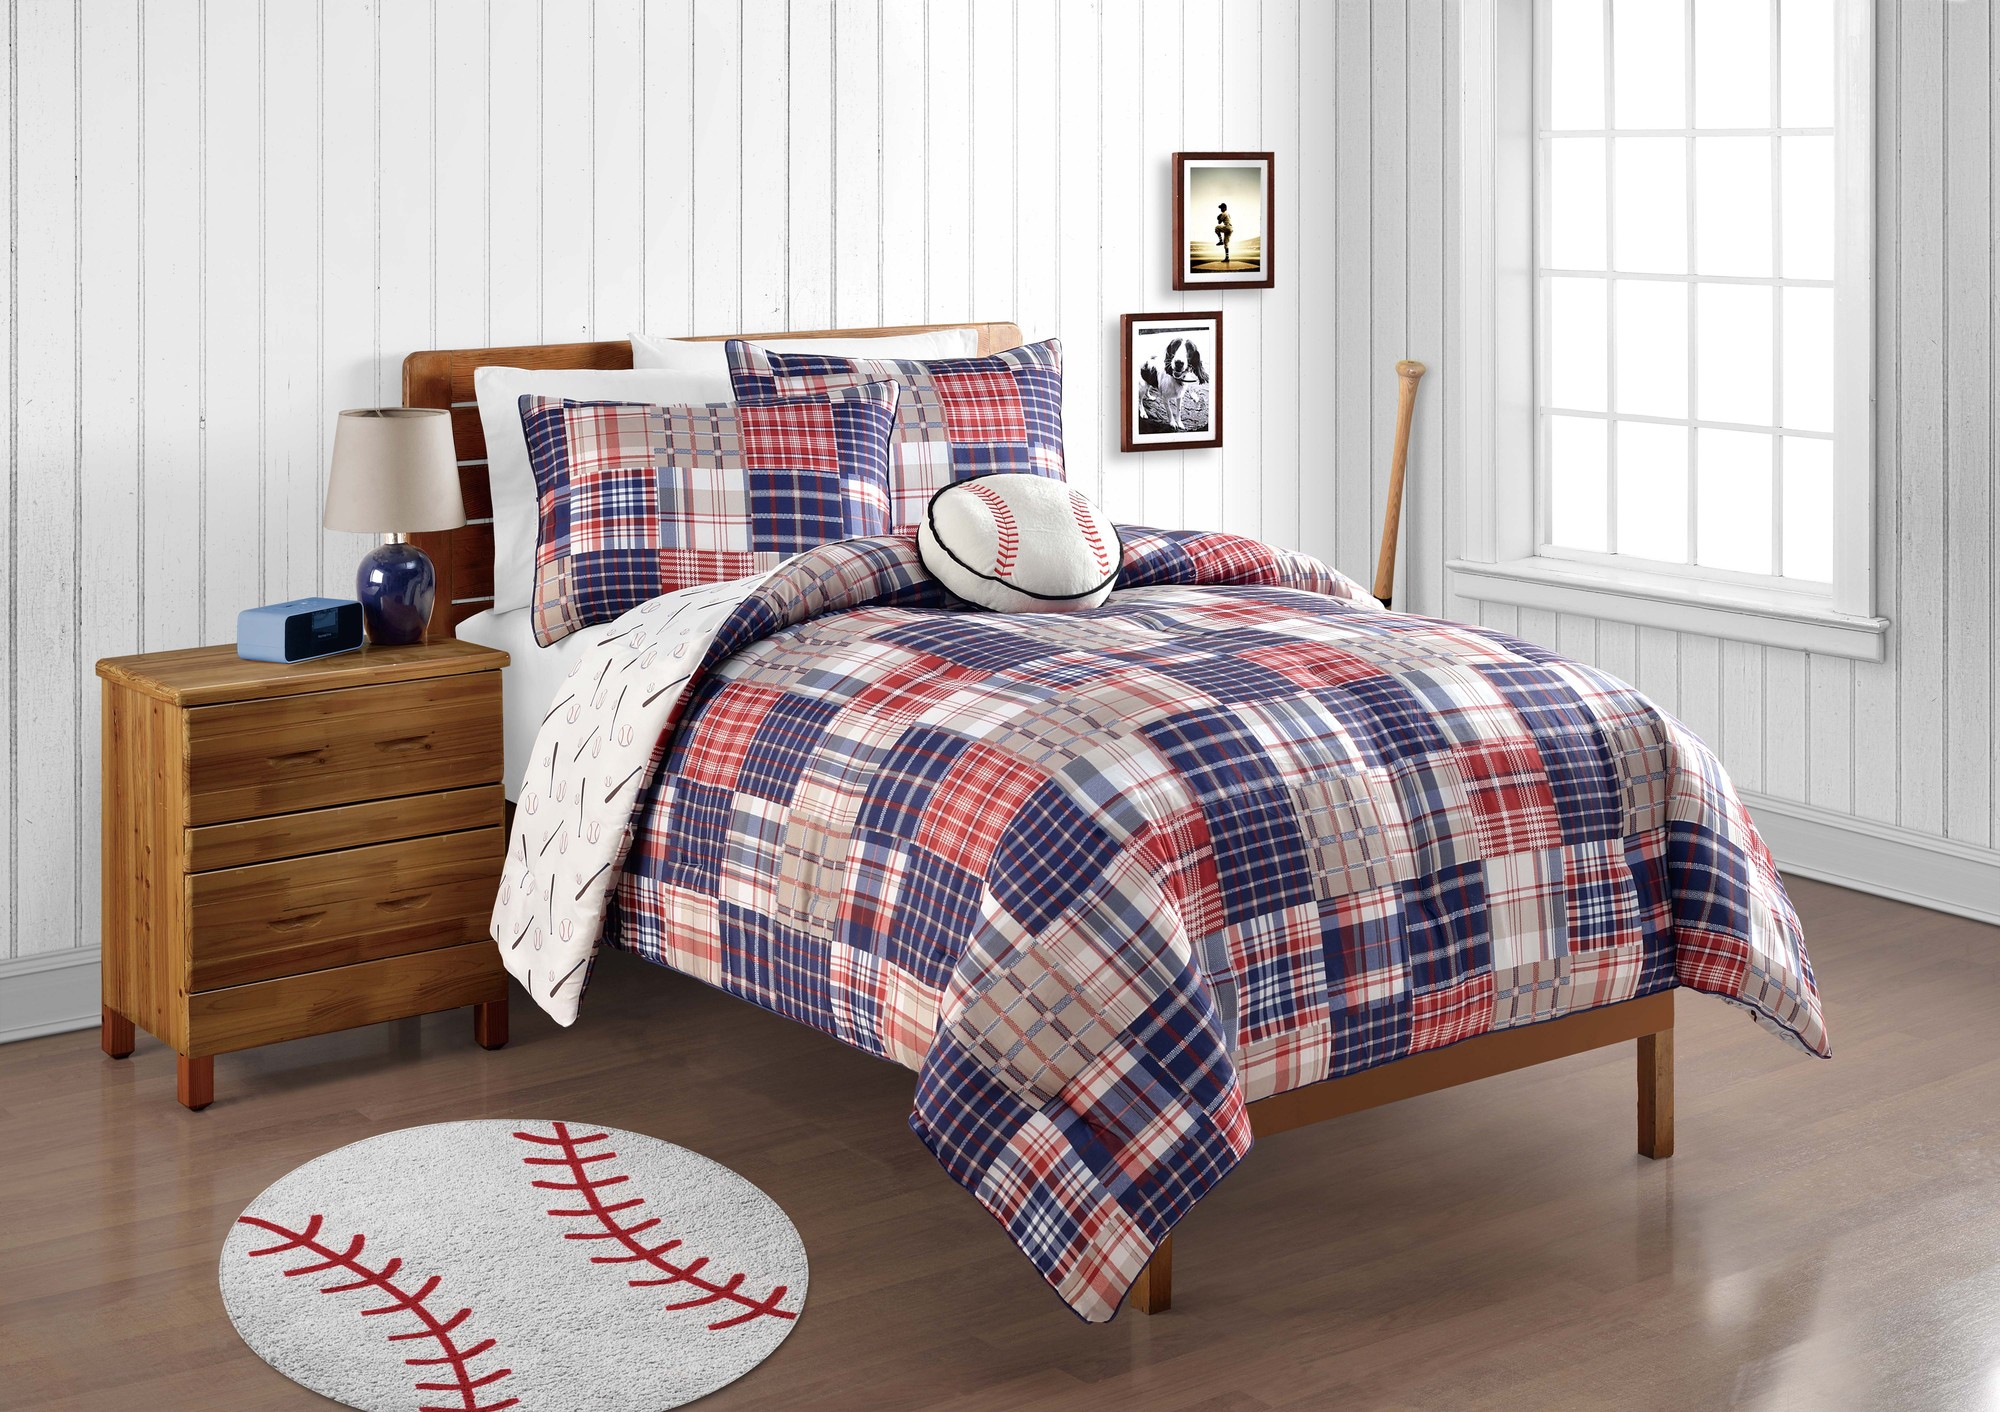 Breathtaking plaid comforter with rugs and wooden floor plus headboard and sidetable also pillows